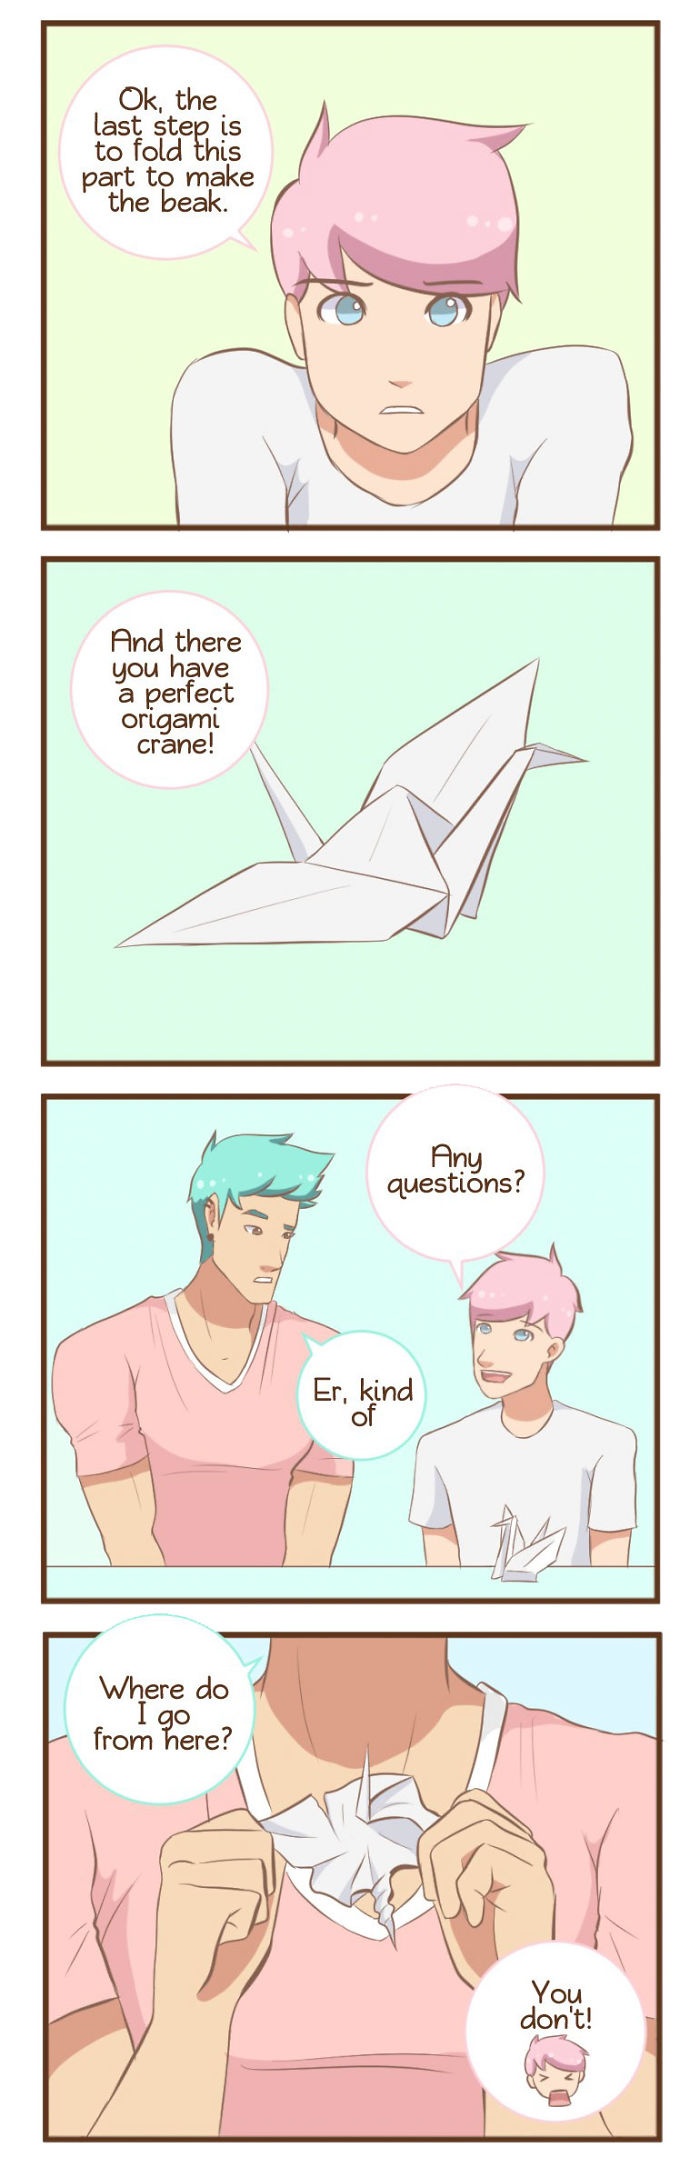 Daily life of a gay couple comics